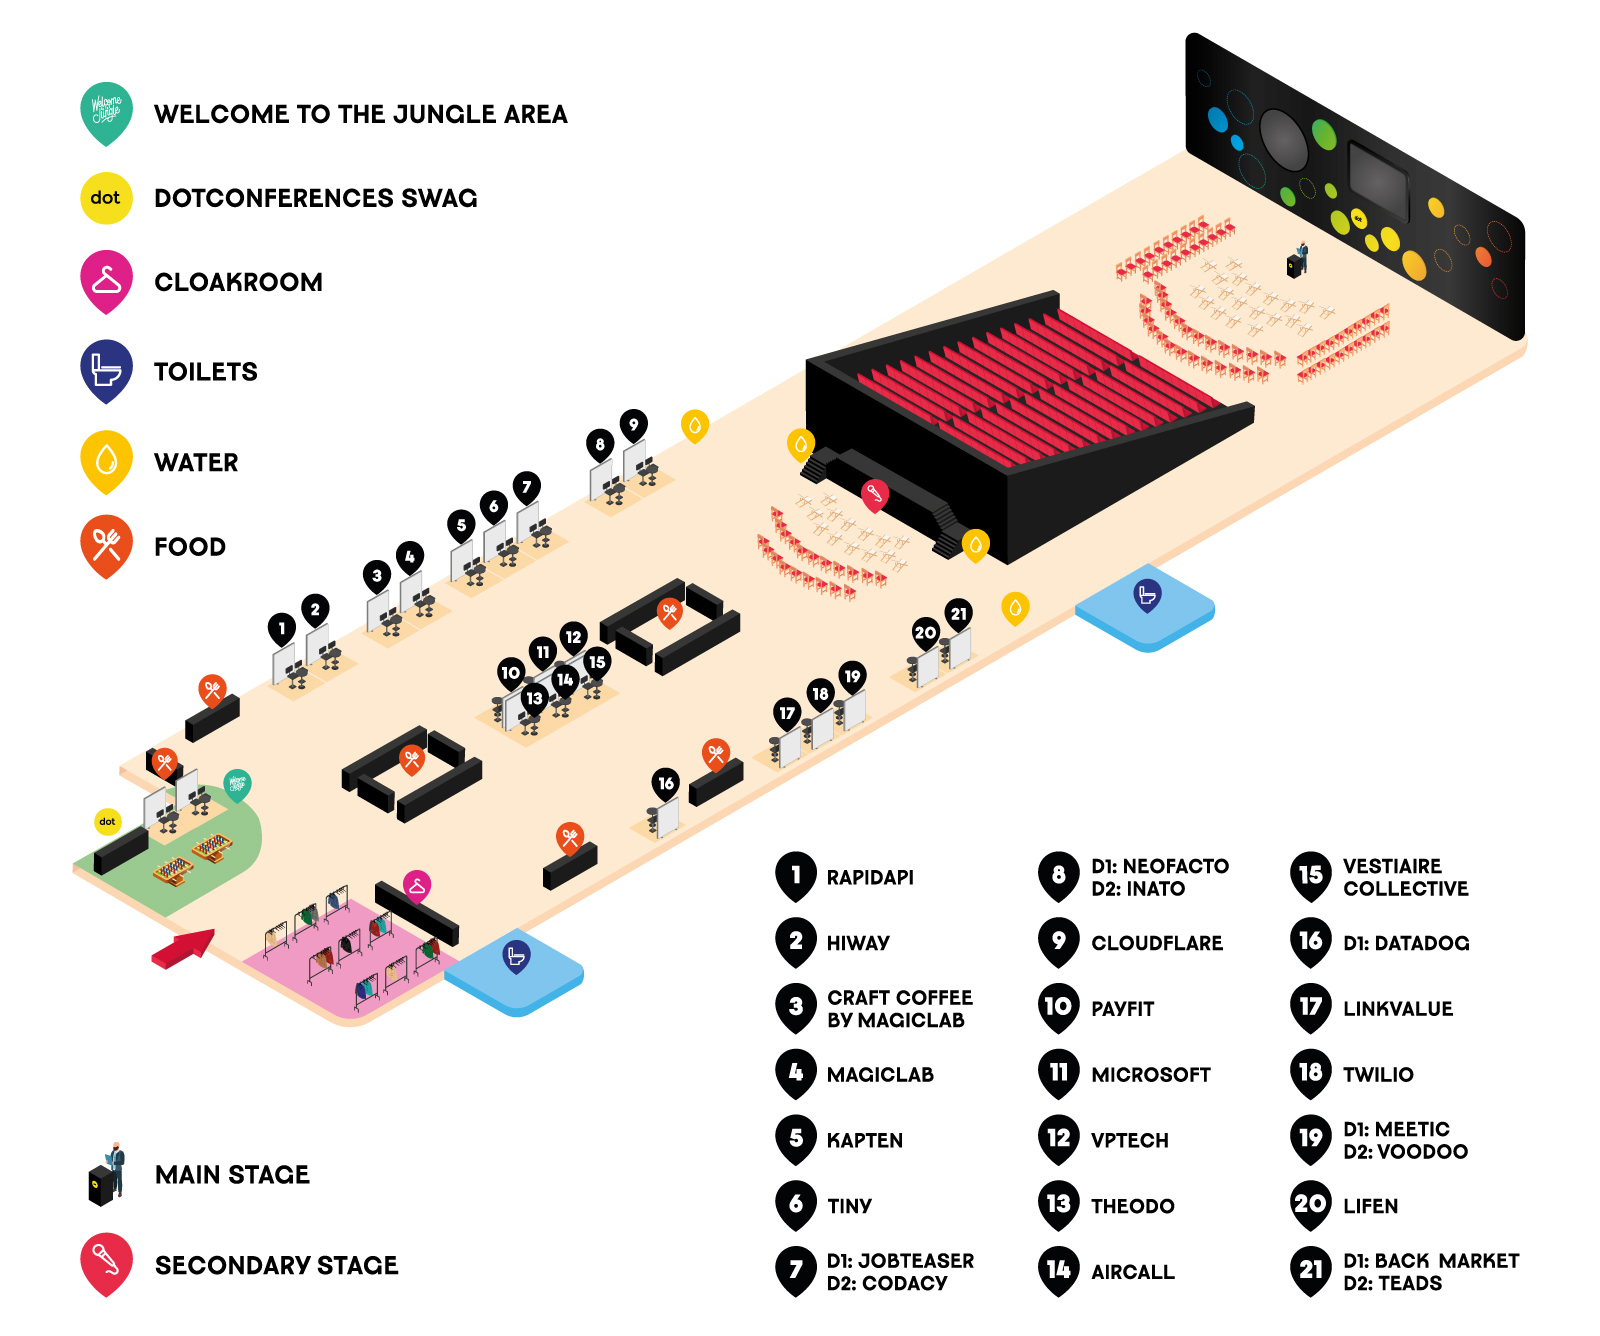 dotJS 2019 venue map